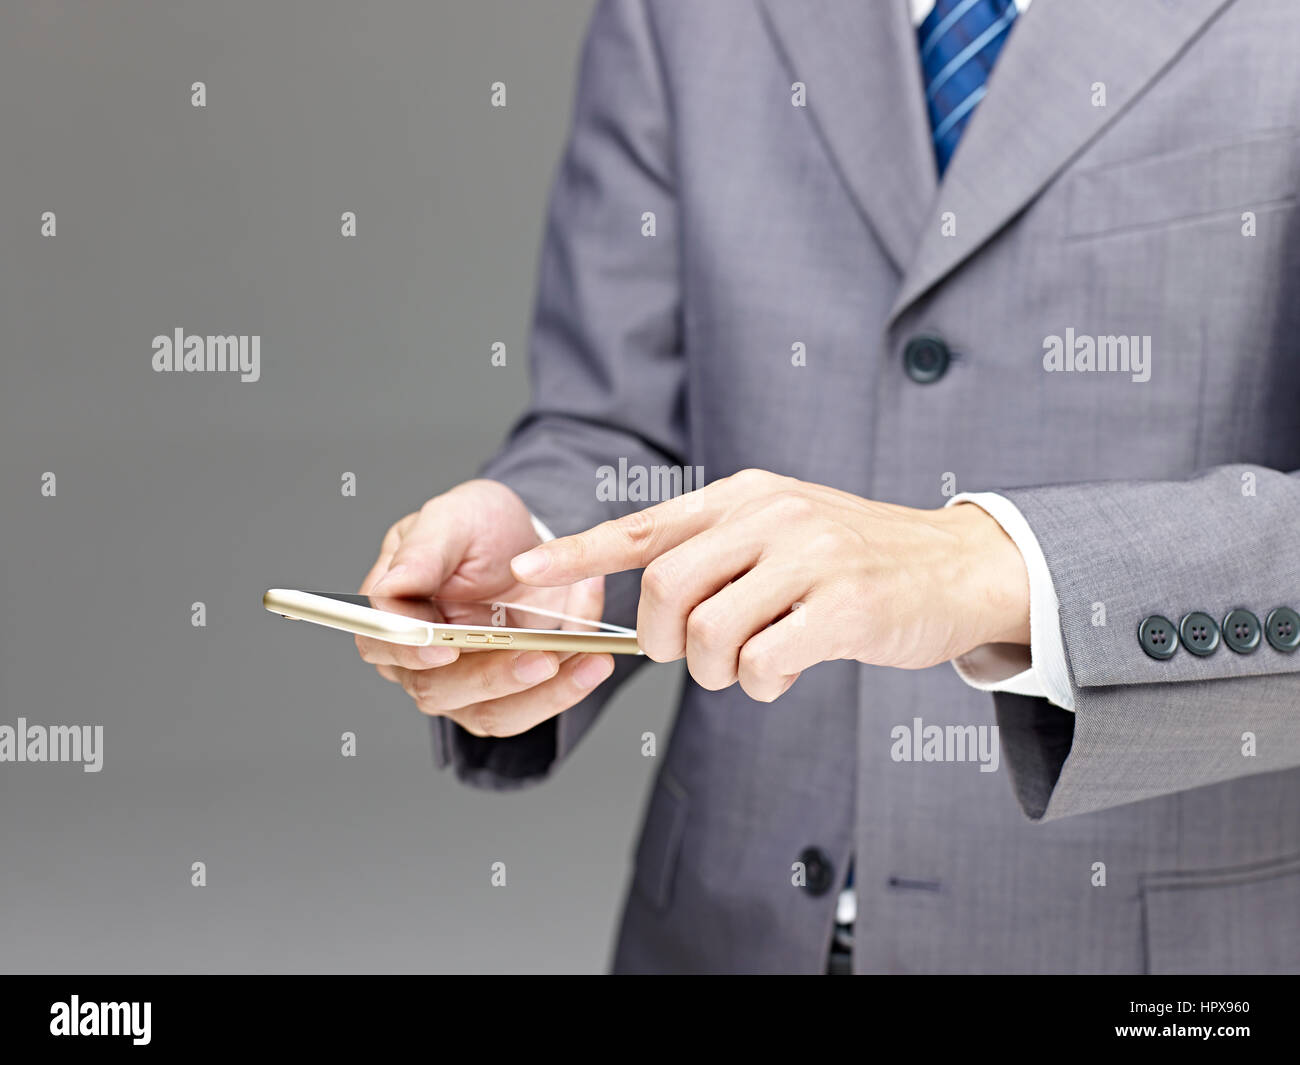 businessman using a mobile phone with finger pointing at the screen, gray background. - Stock Image